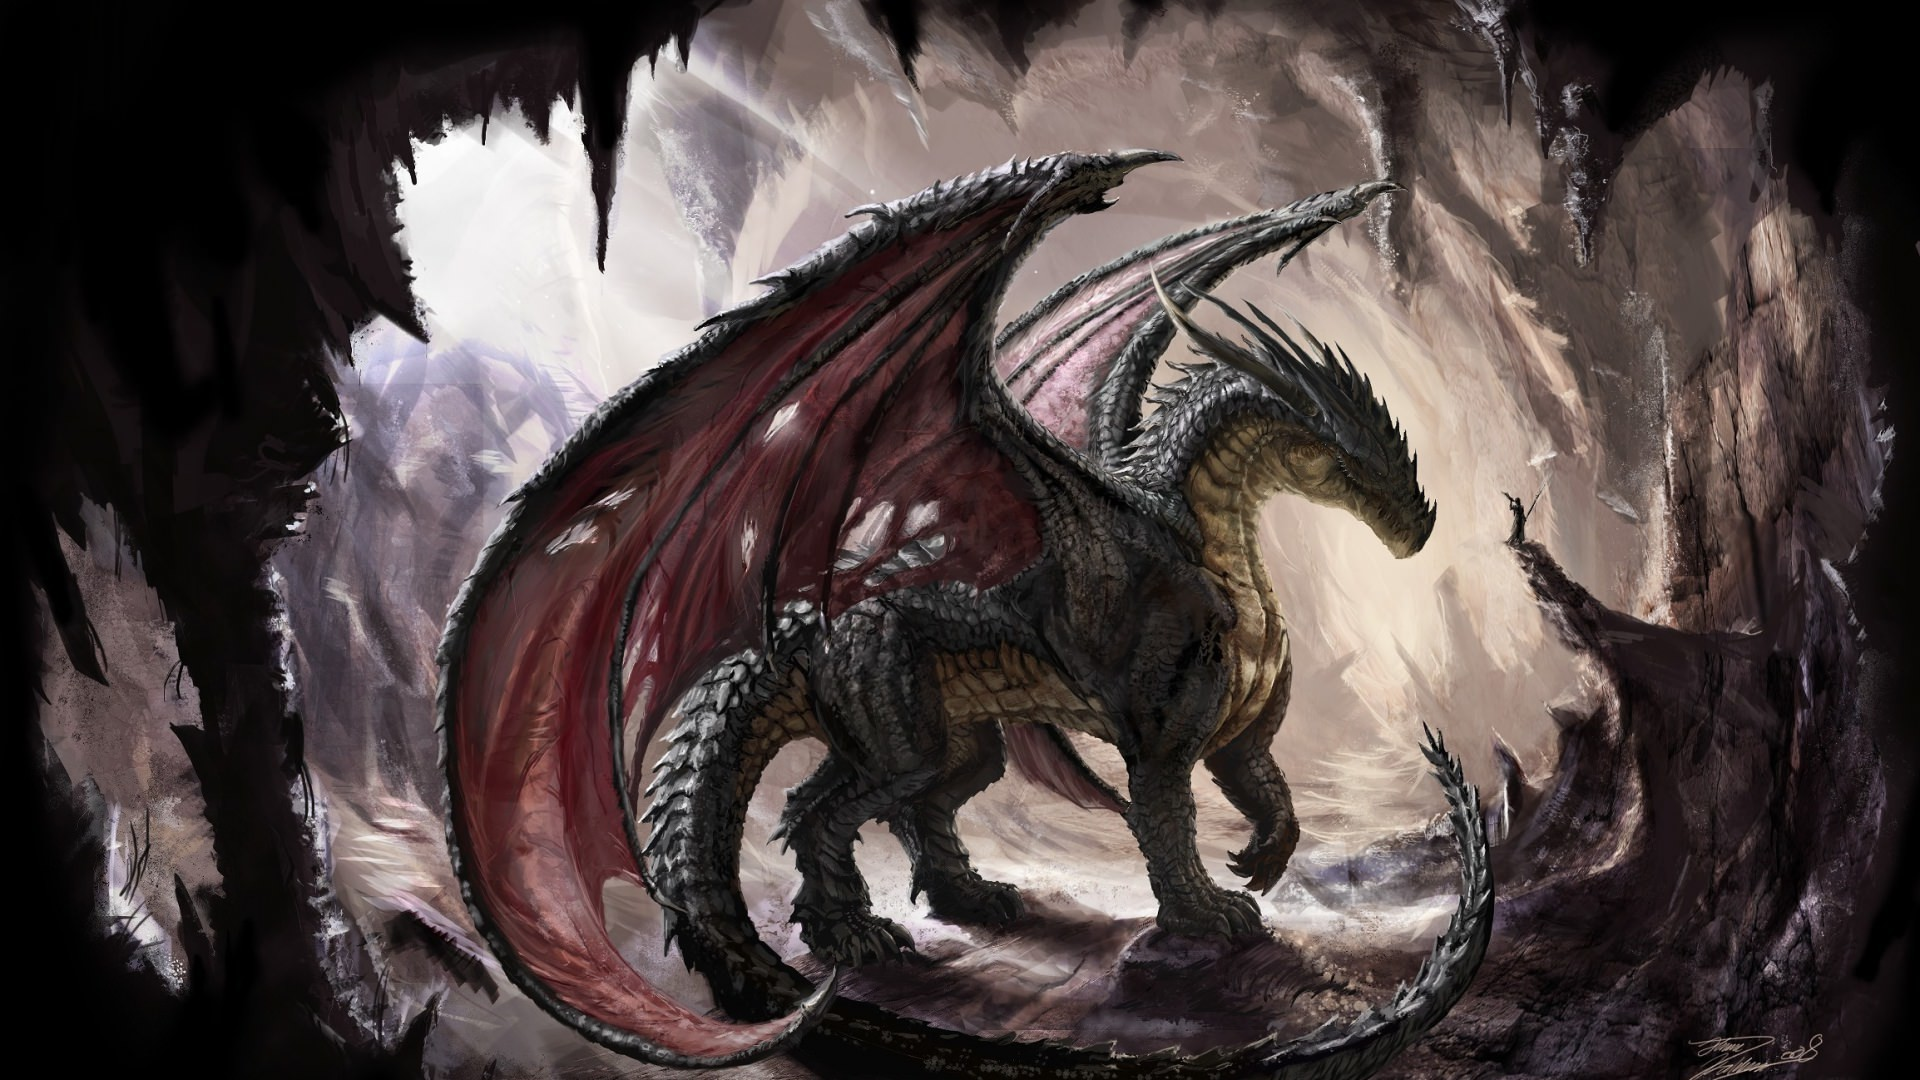 1920x1080 ... Awesome Dragon Wallpapers (76 Wallpapers) – HD Wallpapers ...